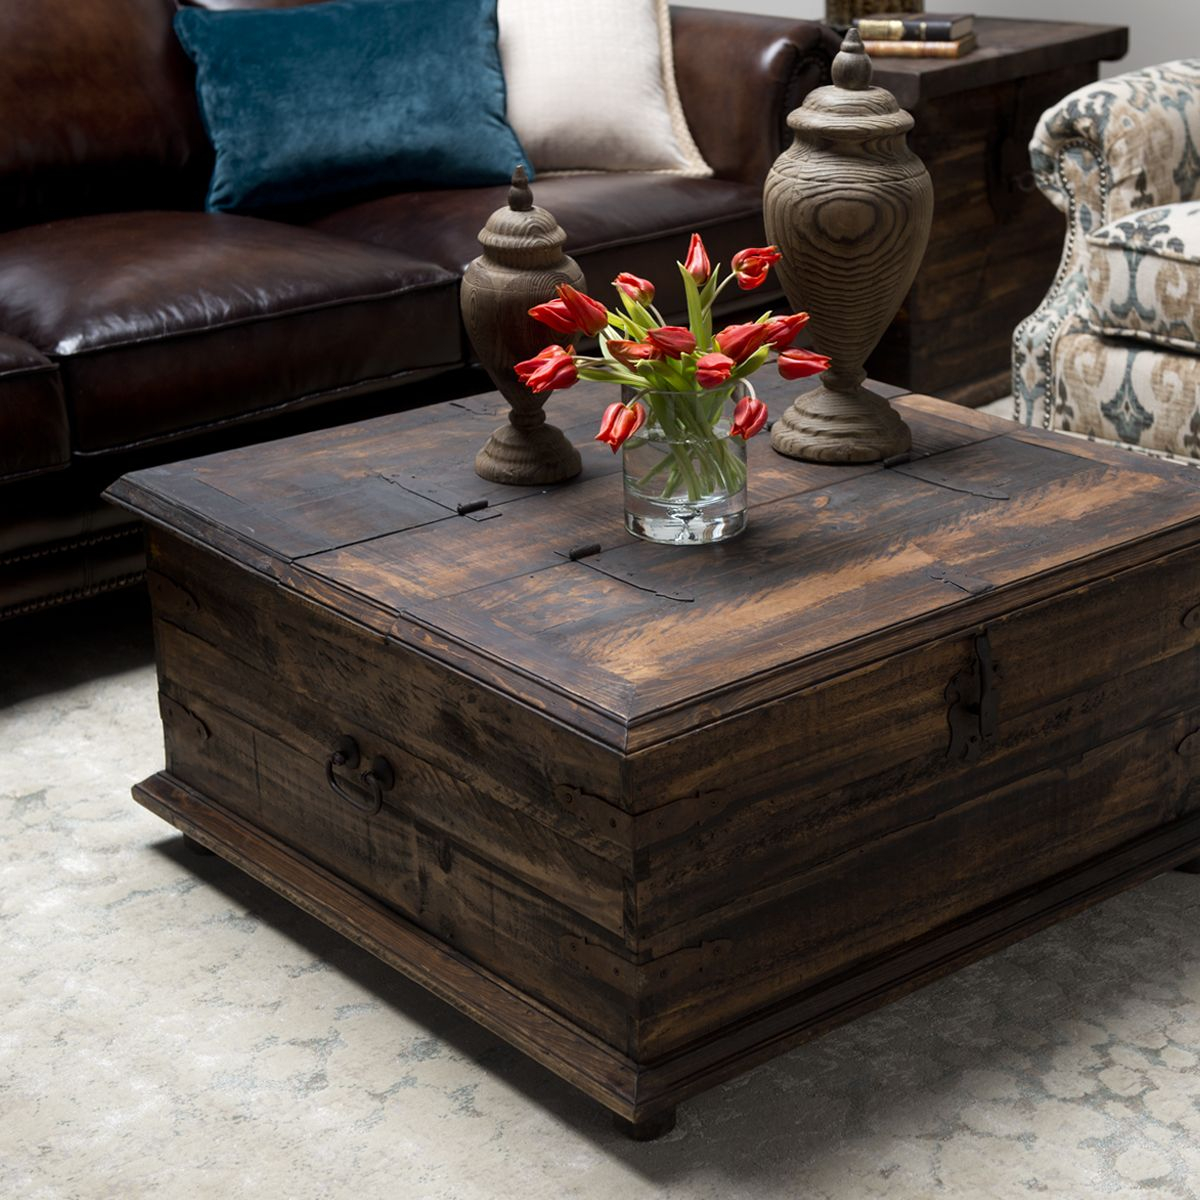 Rustic Coffee Tabletrunk Includes Hinged Lid For Handy Storage within dimensions 1200 X 1200